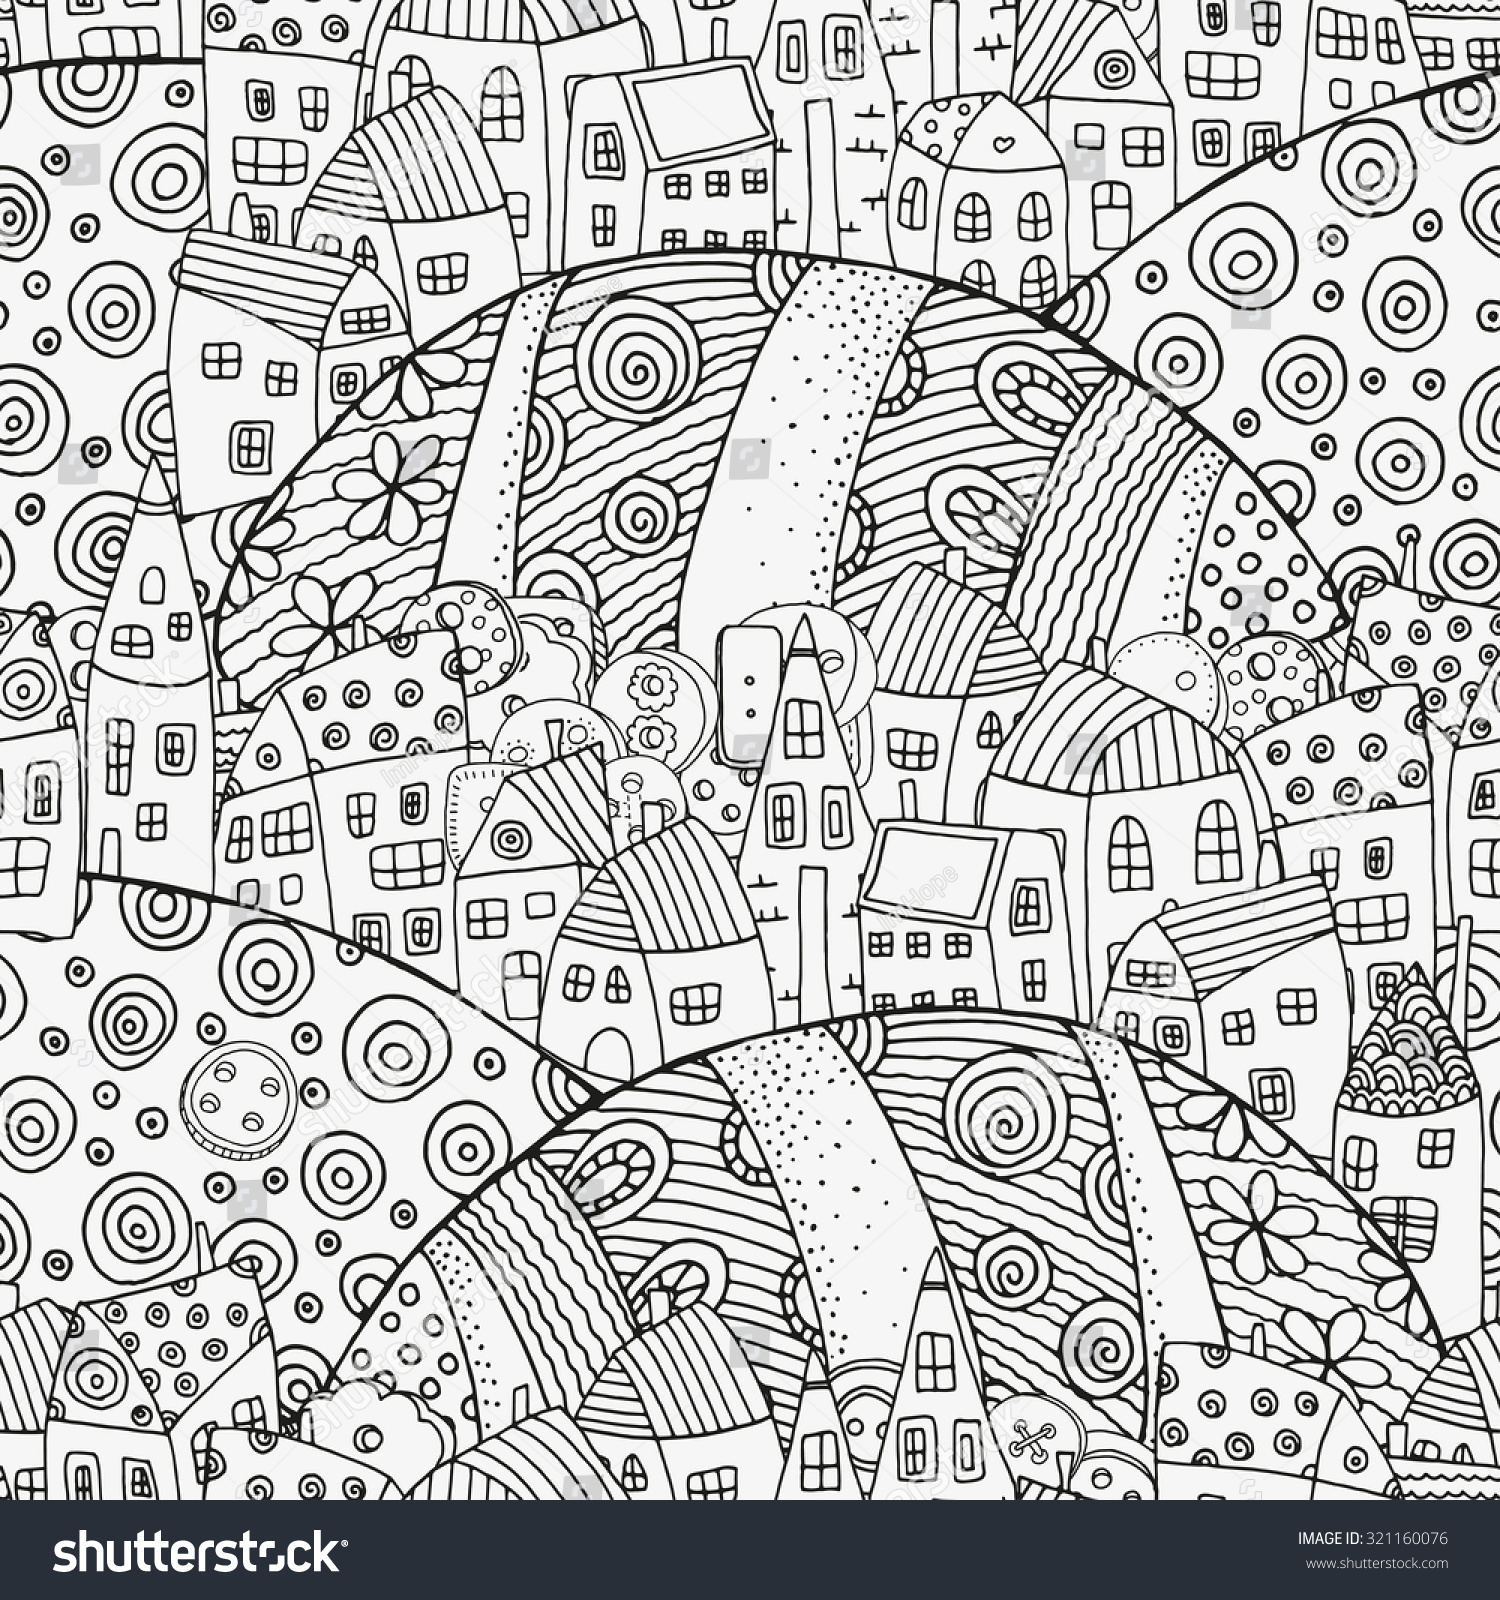 Neighborhood Coloring Therapy Pinterest